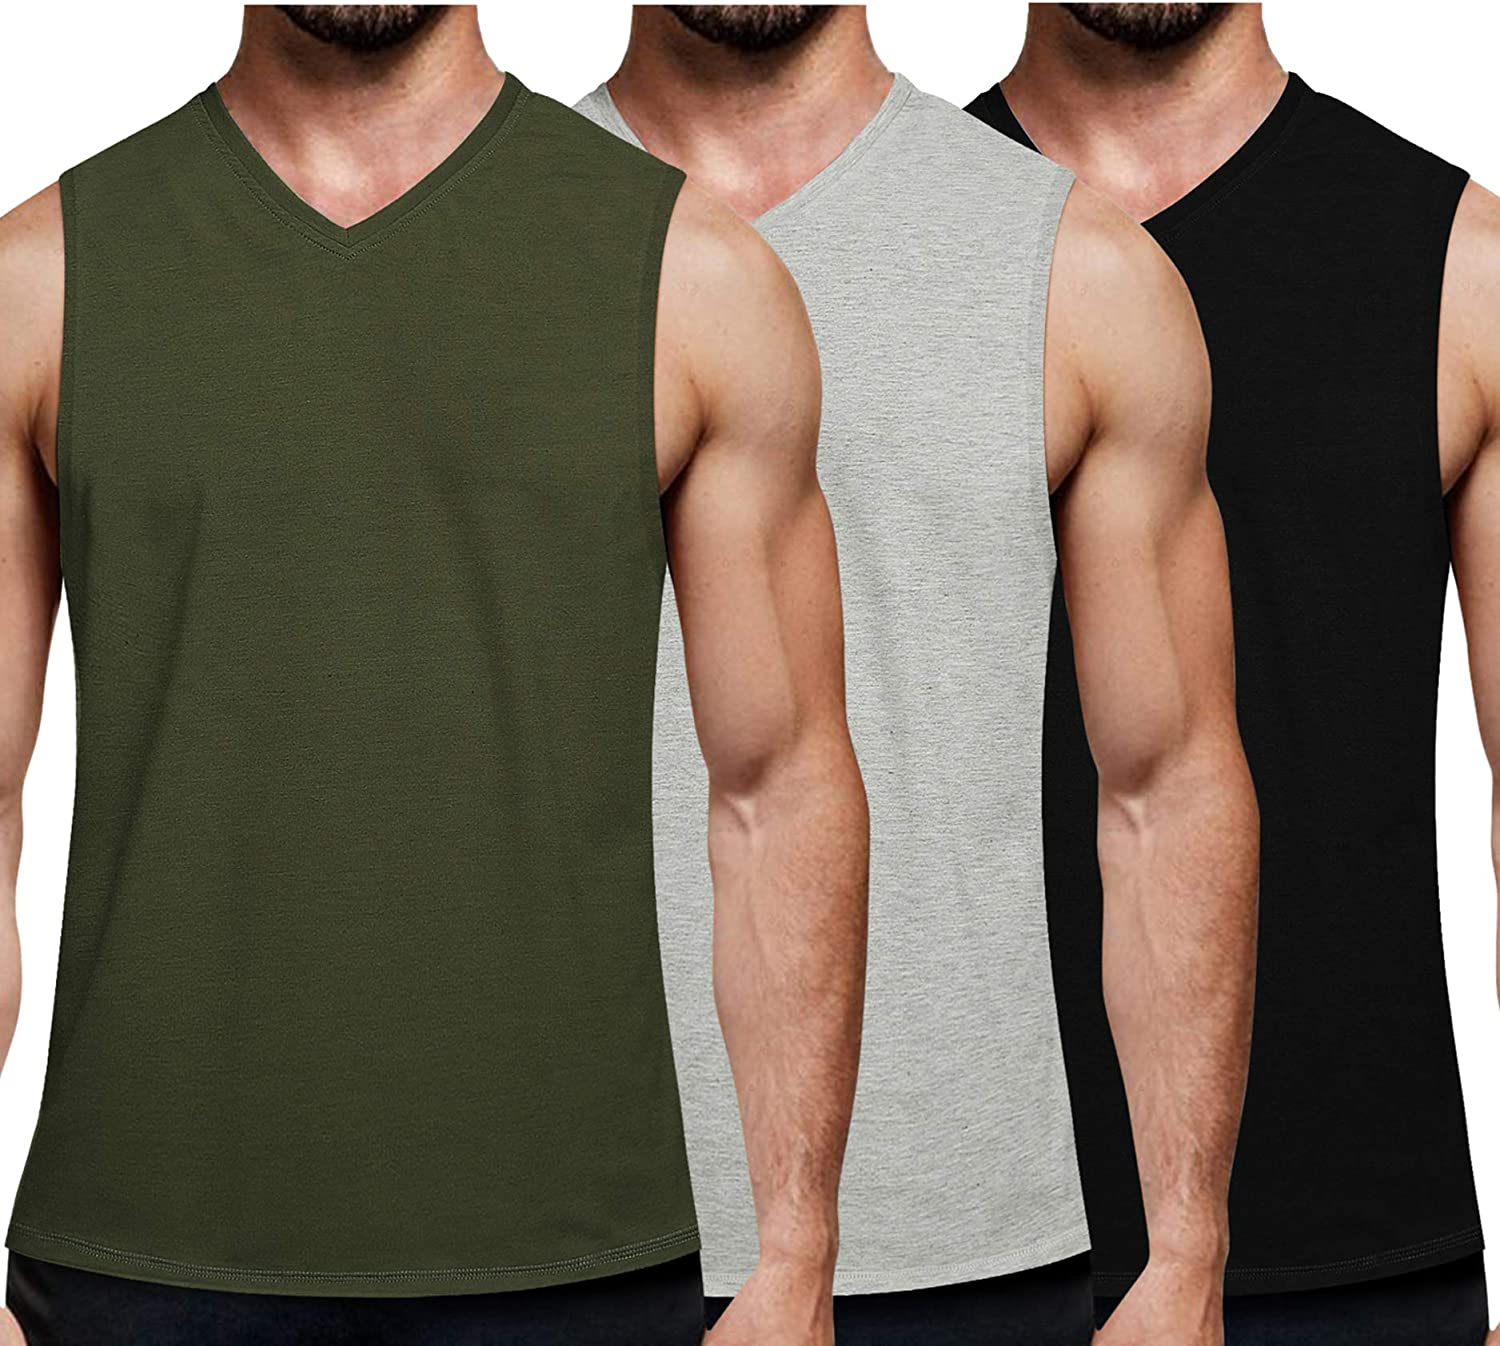 Coofandy Mens Vest Tops 3 Pack Tank Tops Workout Gym Shirts Muscle Tee Bodybuilding Fitness Sleeveless T Shirts